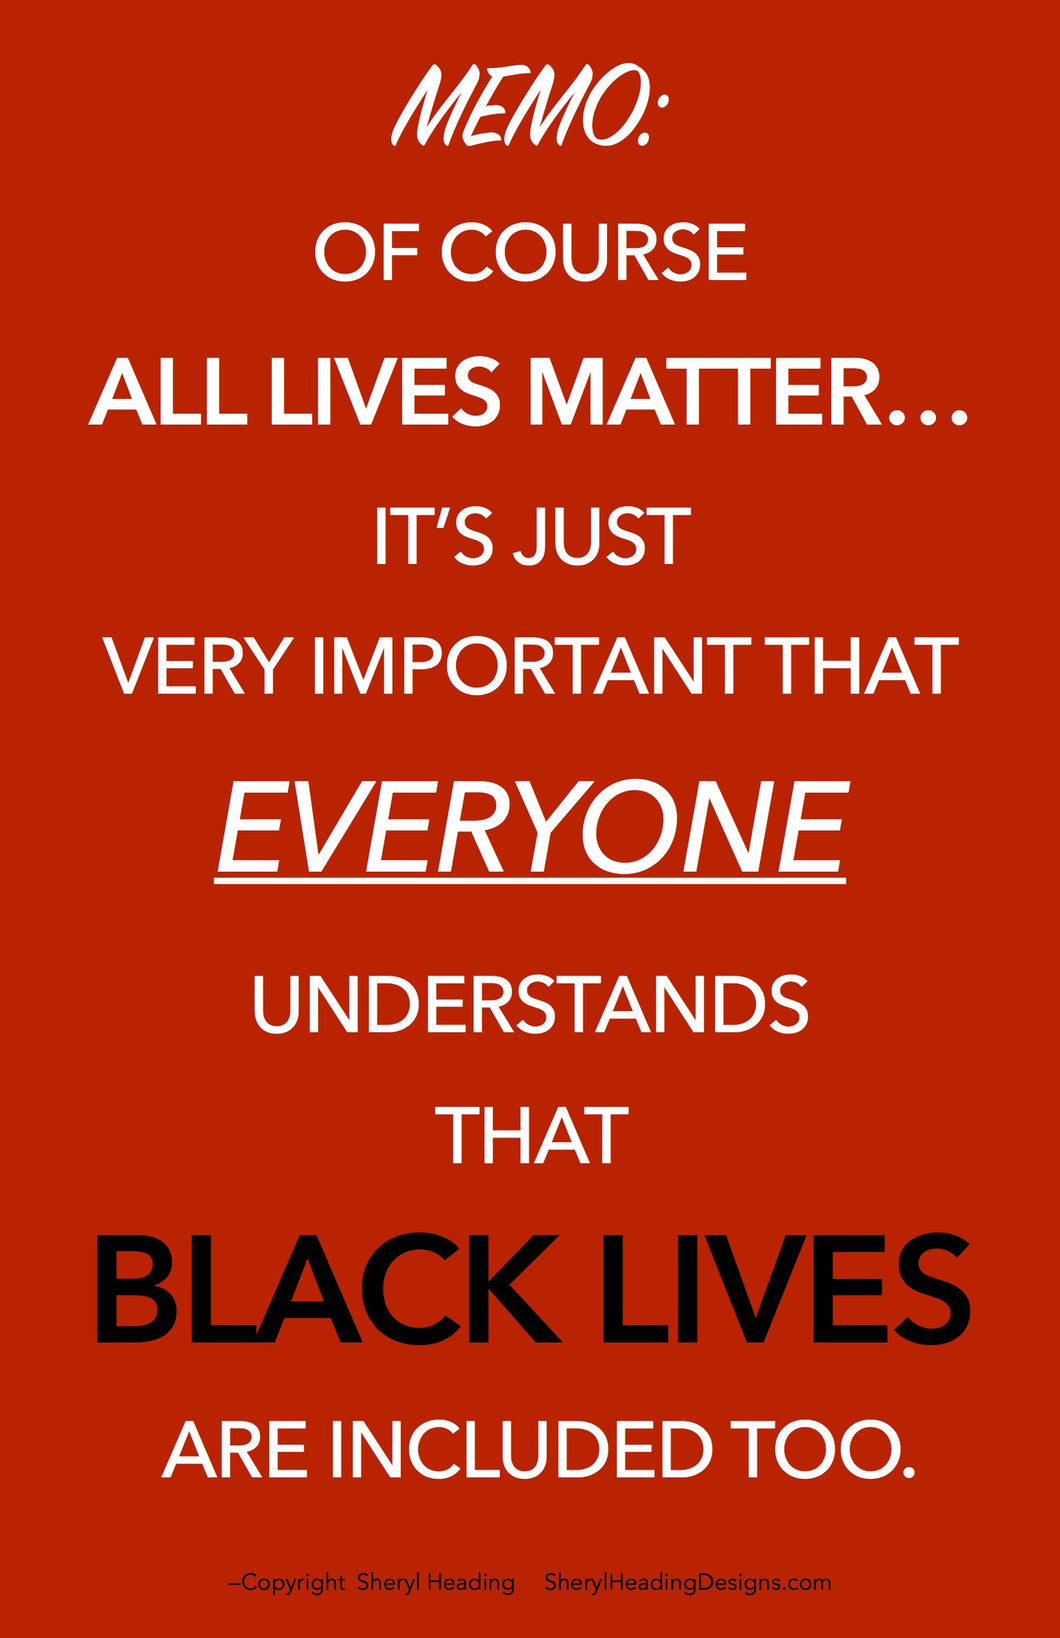 Memo: Of Course All Lives Matter Poster - Sheryl Heading Designs